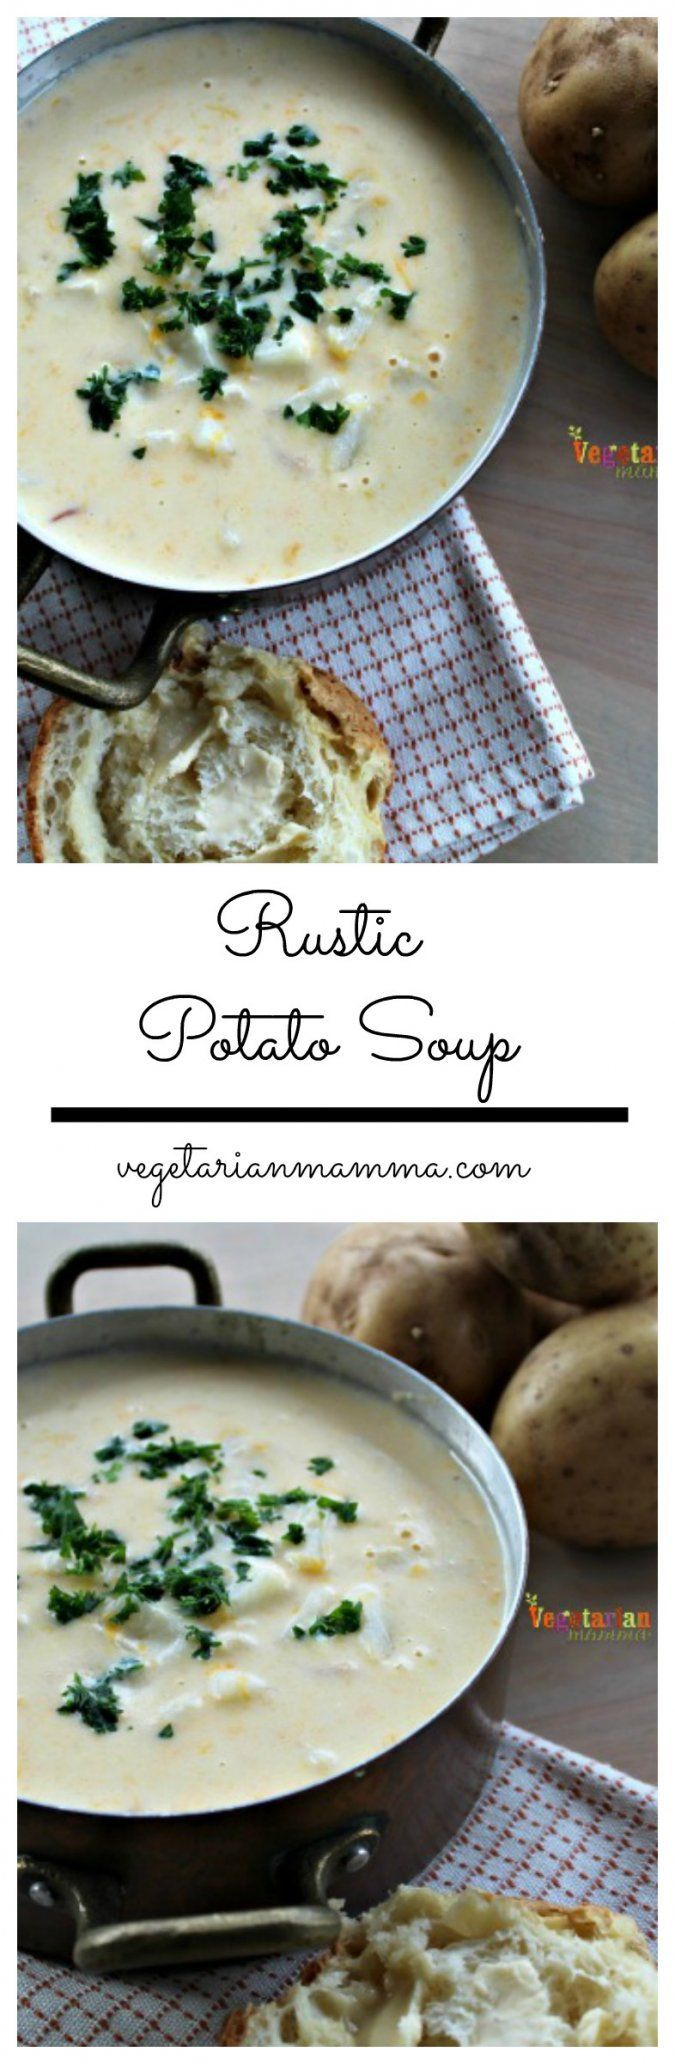 Rustc Potato Soup @vegetarianmamma.com